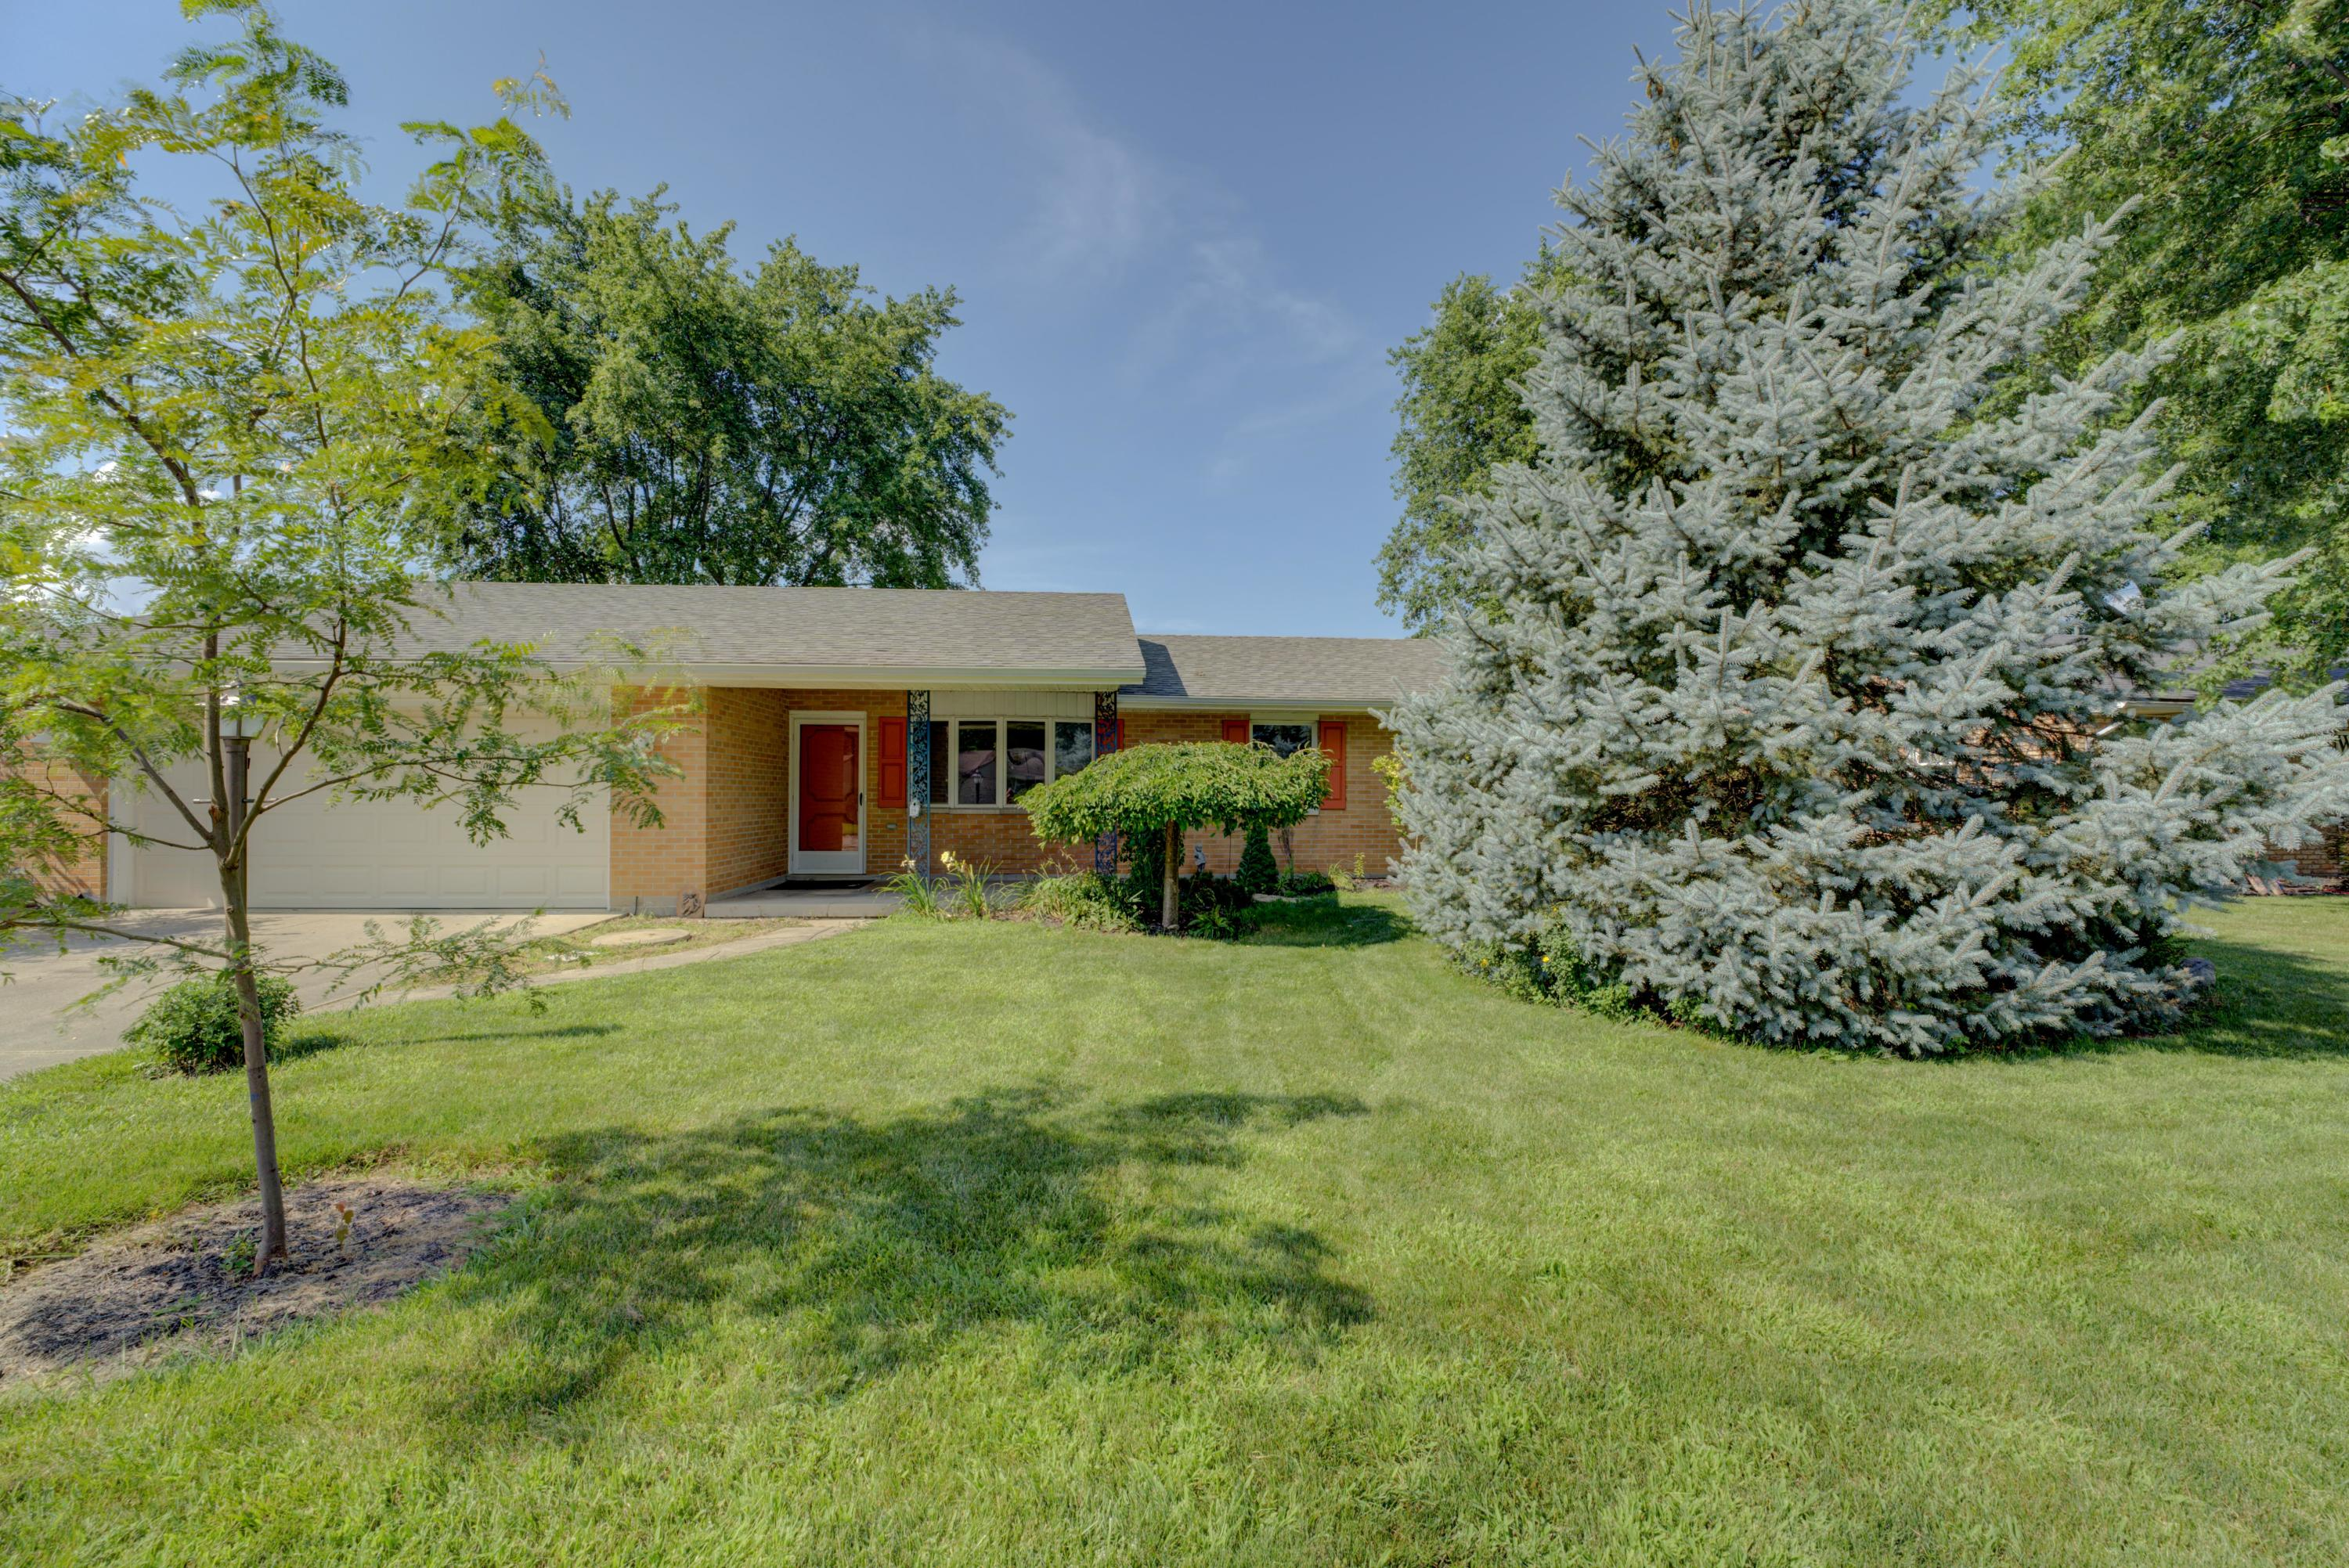 Photo 2 for 452 Medallion Dr Greenville, OH 45331